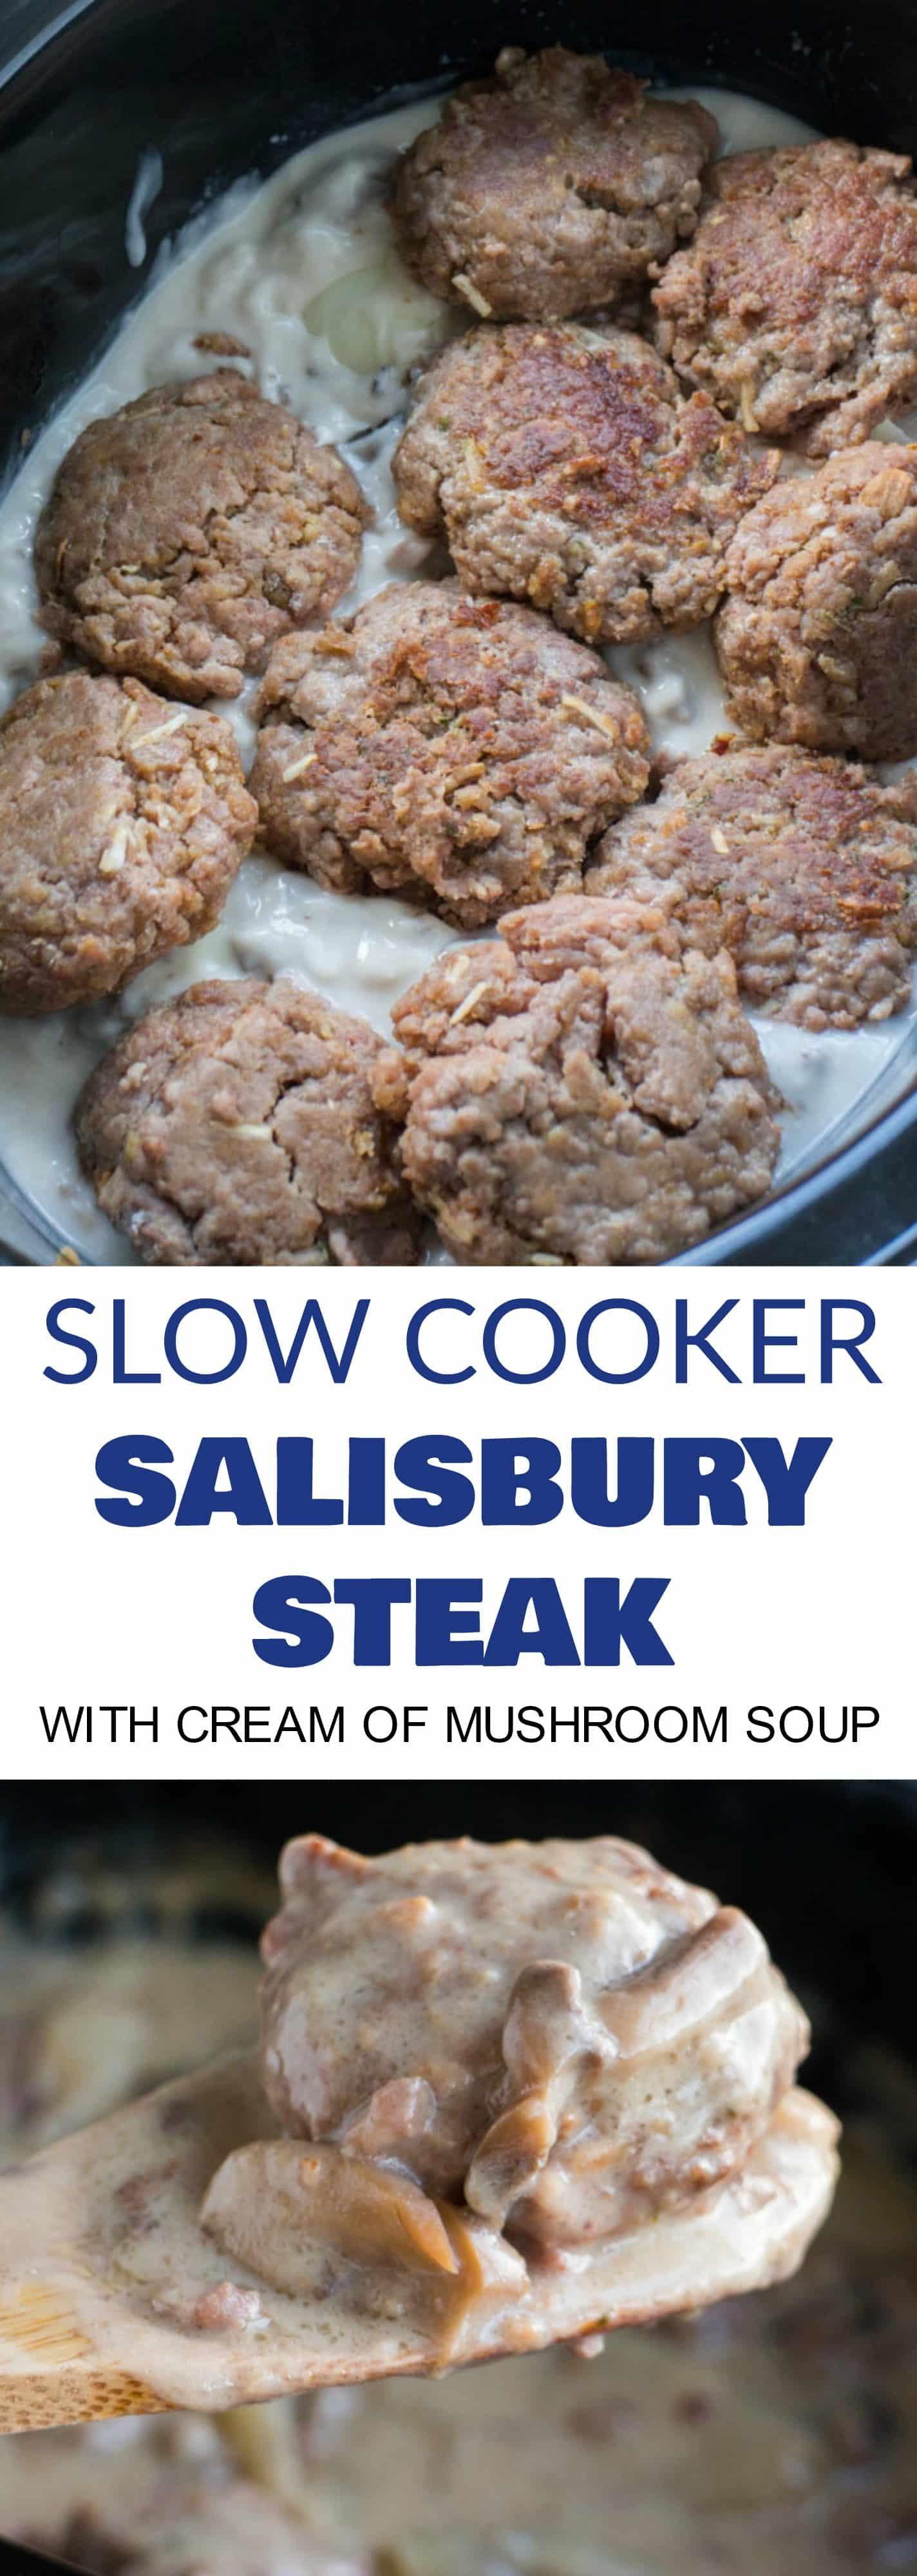 EASY Crockpot Salisbury Steak With Cream of Mushroom Soup! This Slow Cooker recipe is easy to make and is ready in 5 hours! It's made with dry onion soup mix and cream of mushroom soup to make a comforting gravy your entire family is going to love! I always serve on egg noodles or with mashed potatoes! This is one of my favorites simple weeknight meals!